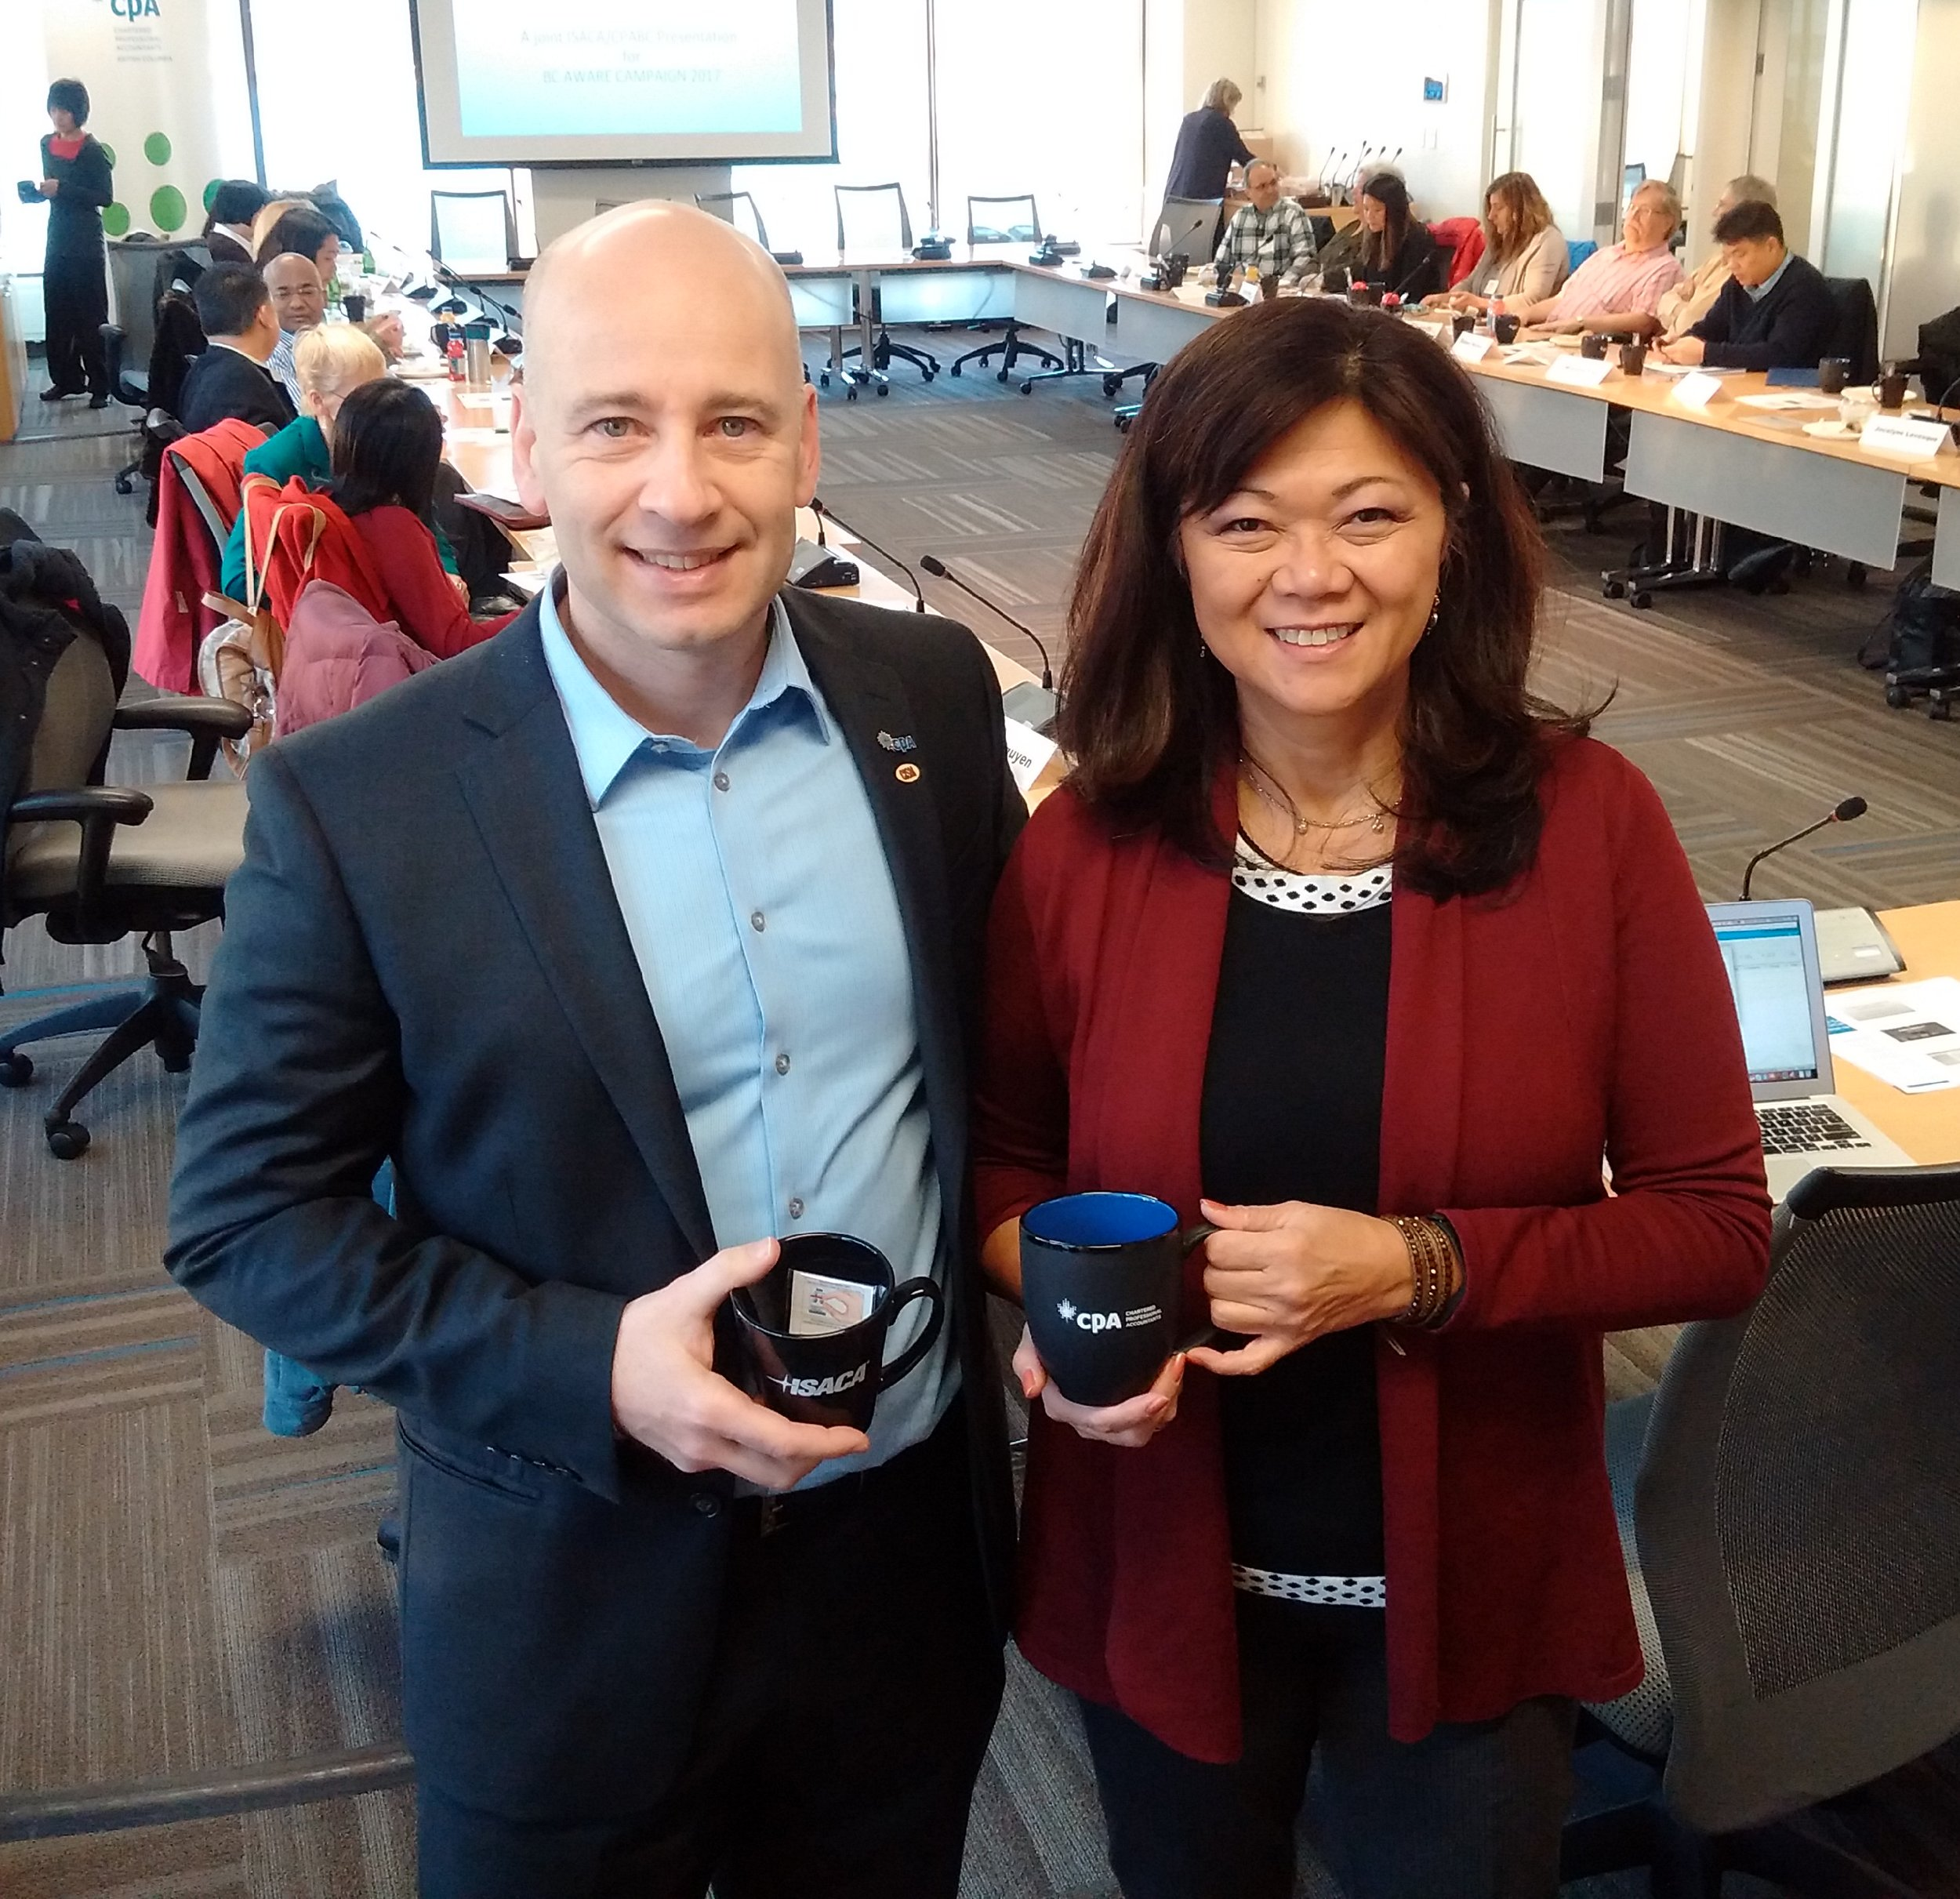 CPA BC Event Speakers: Medy Dytuco and Edward Pereira